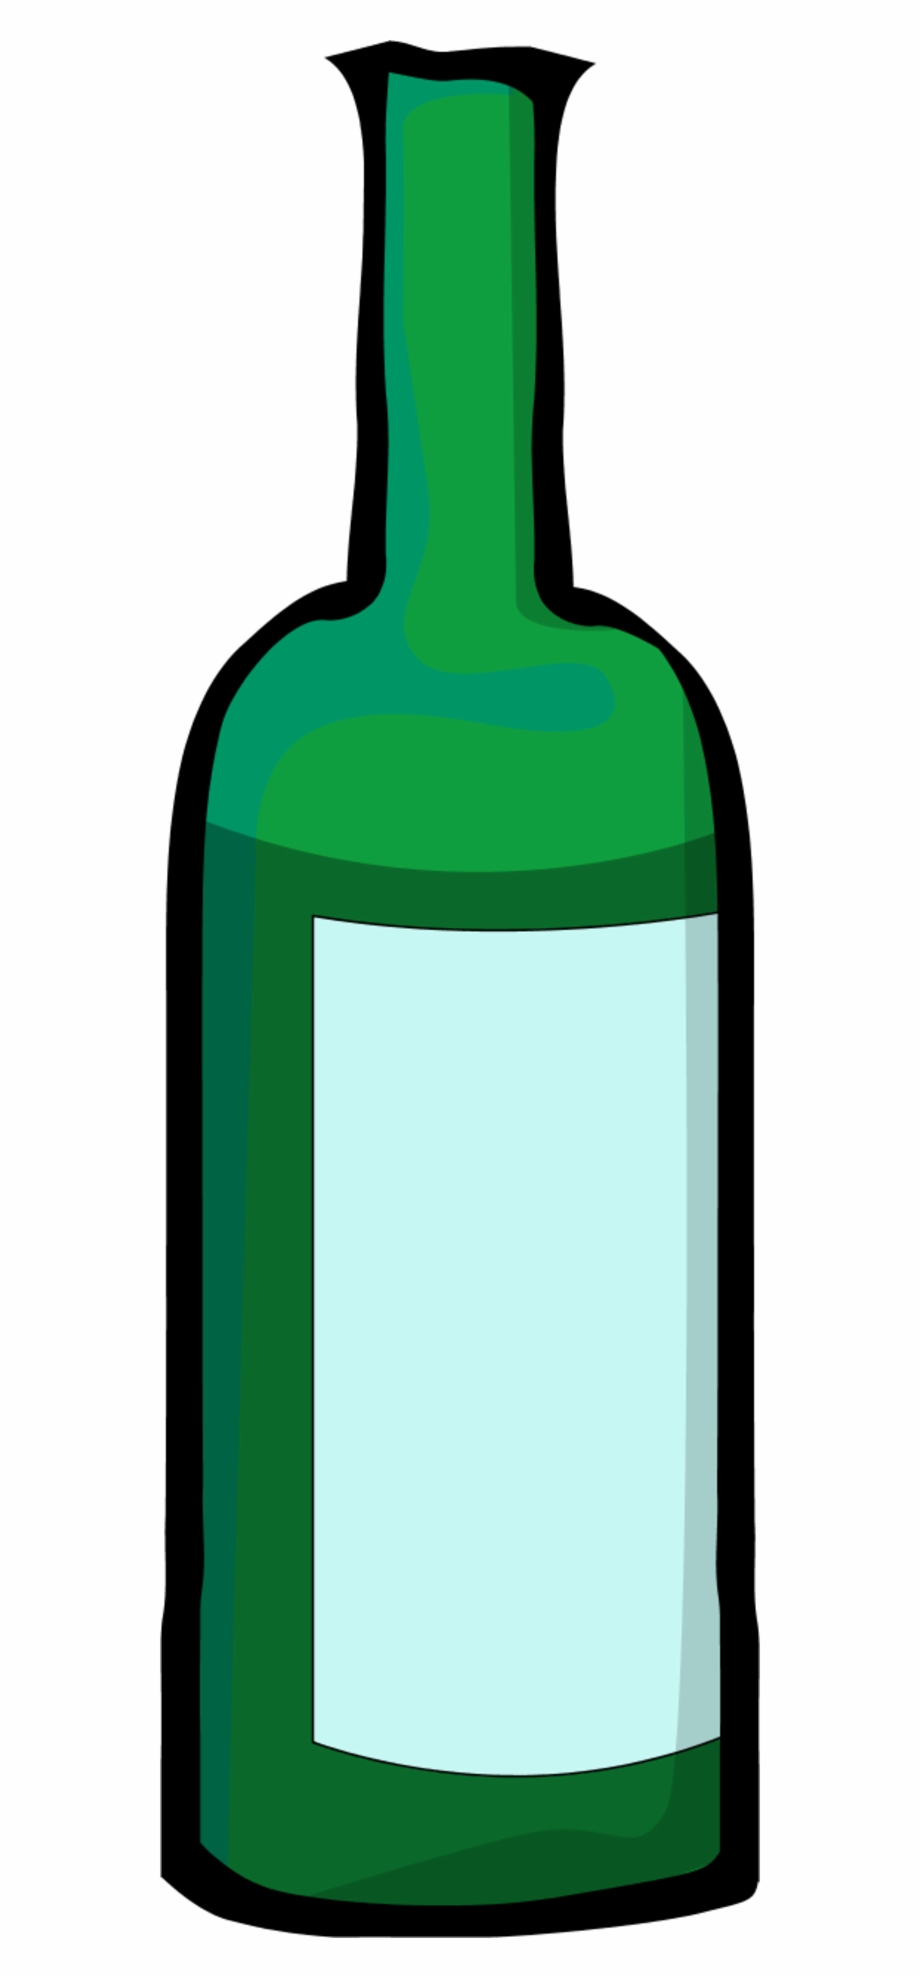 Wine bottle clipart blue svg black and white Bottle Clipart Green Bottle - Wine Bottle Clip Art - wine ... svg black and white